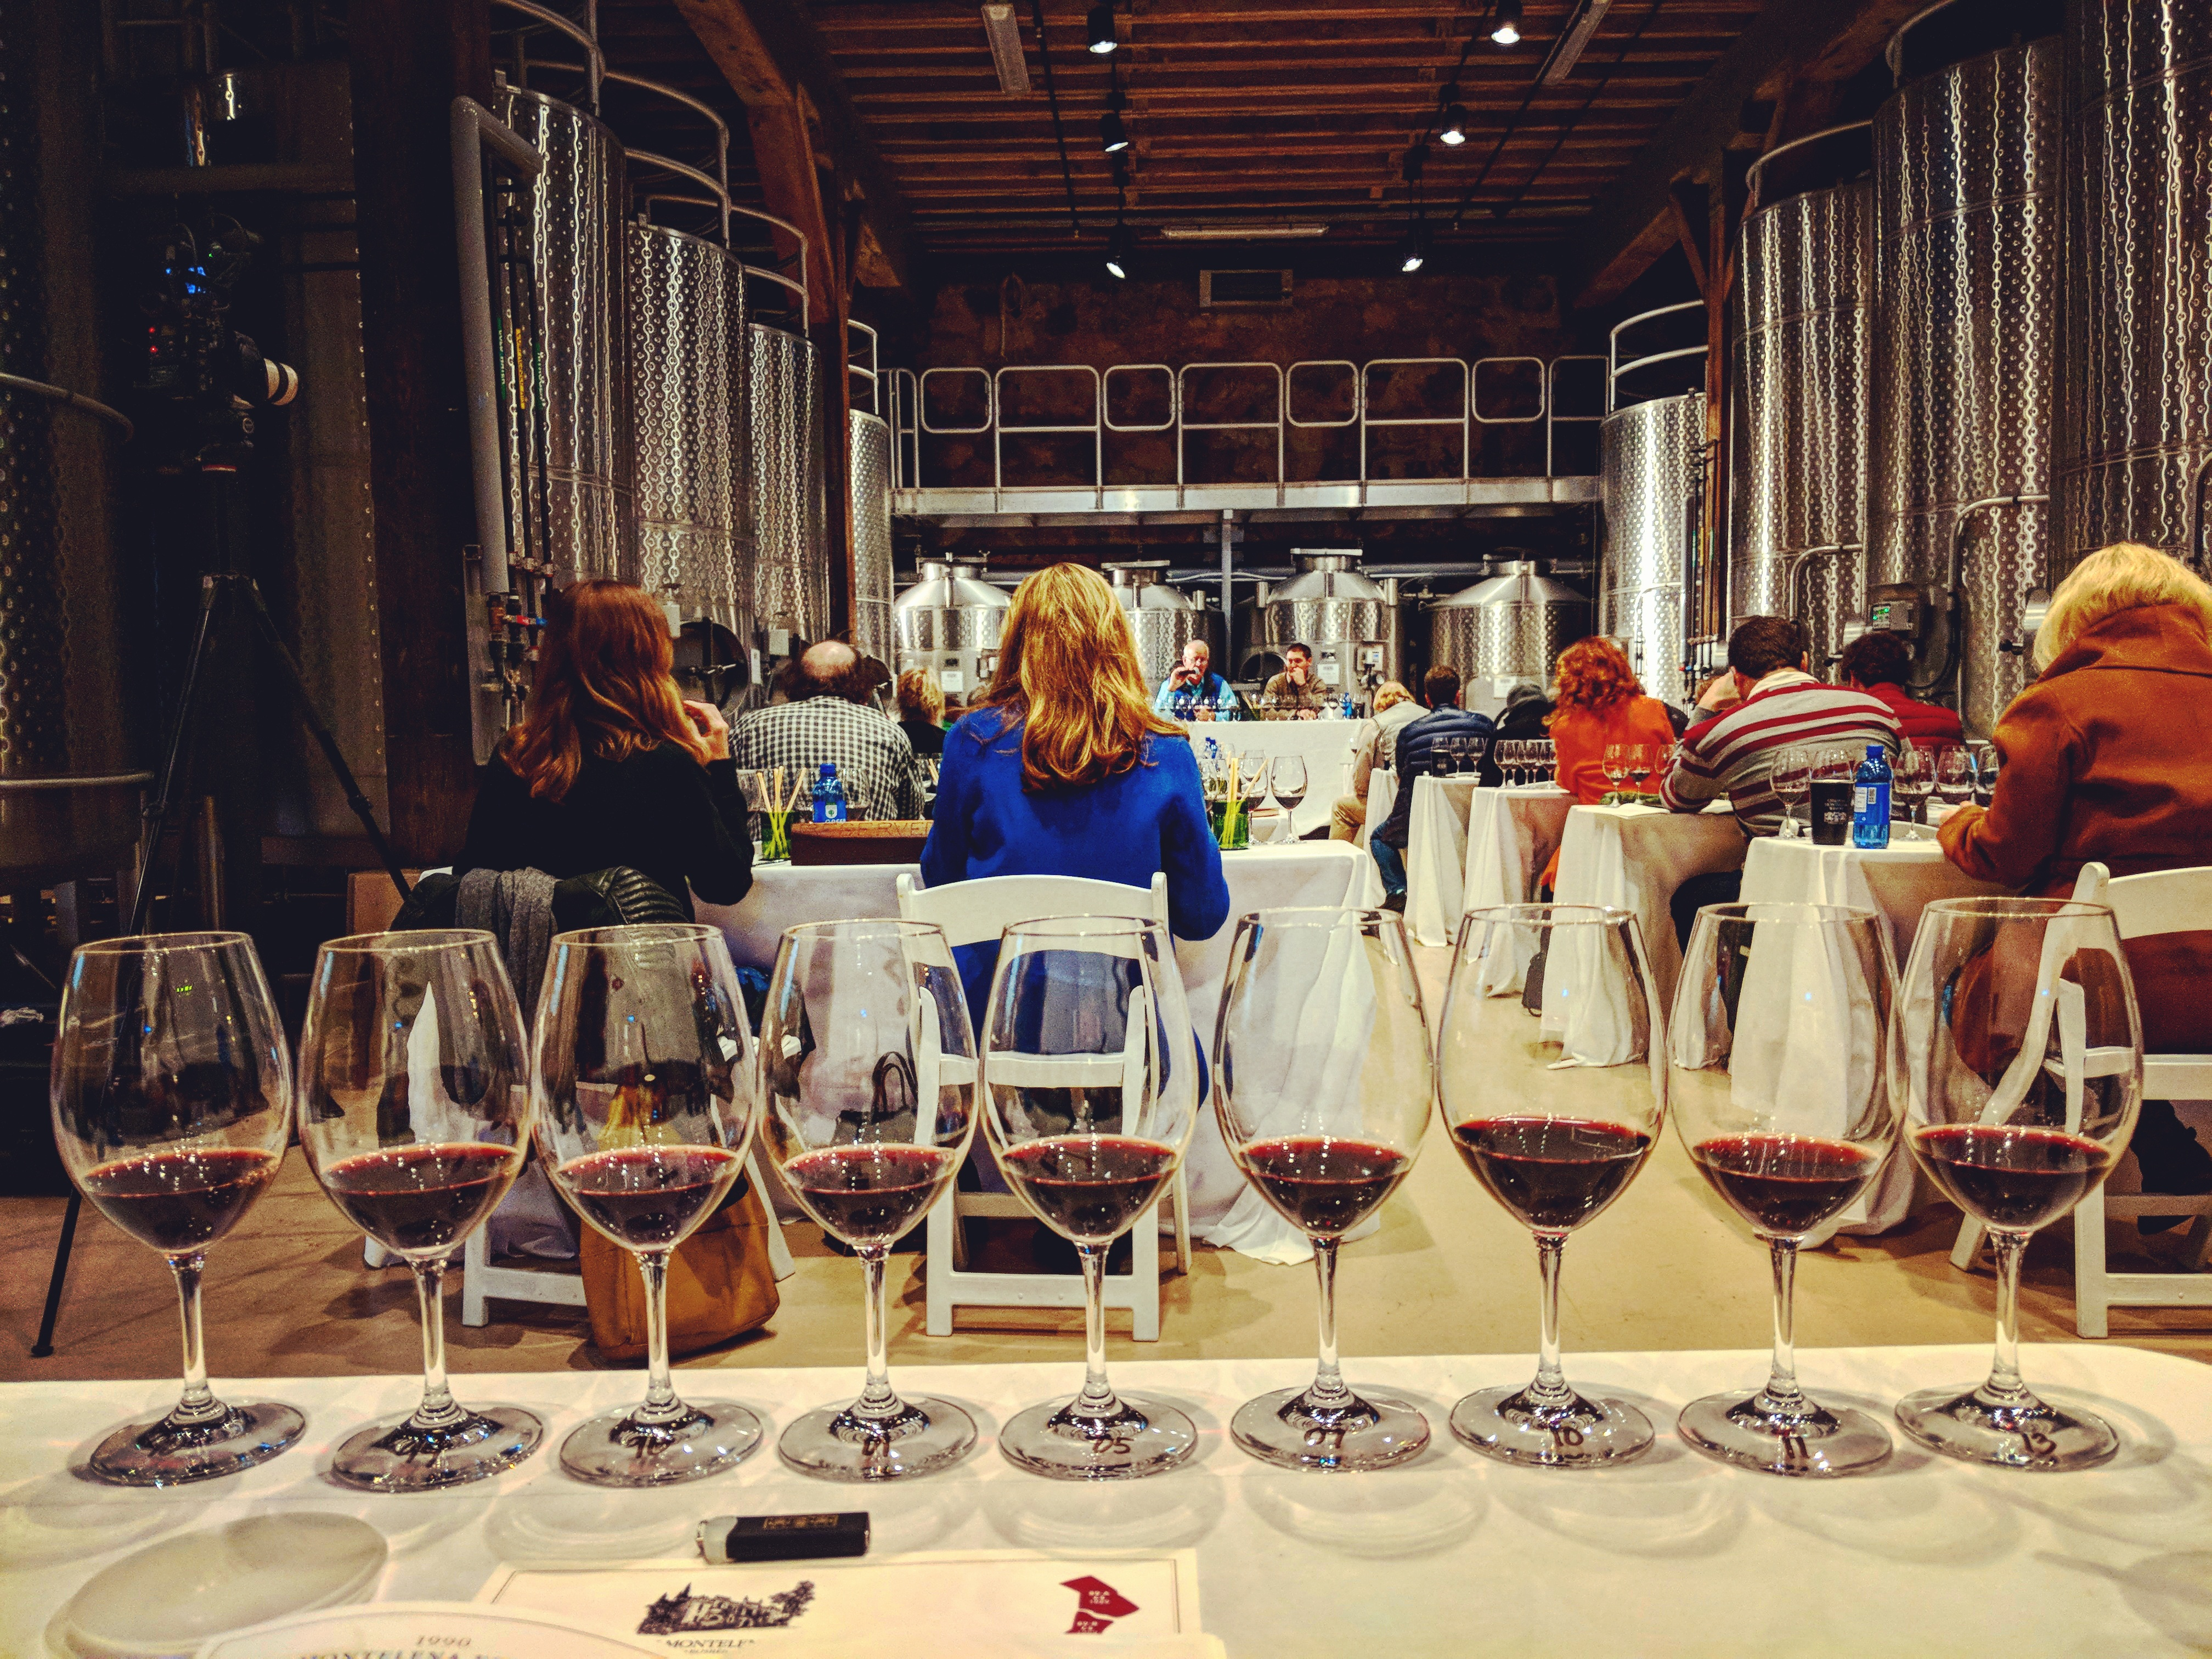 50 Years of Cabernet: The Chateau Montelena Dream Tasting